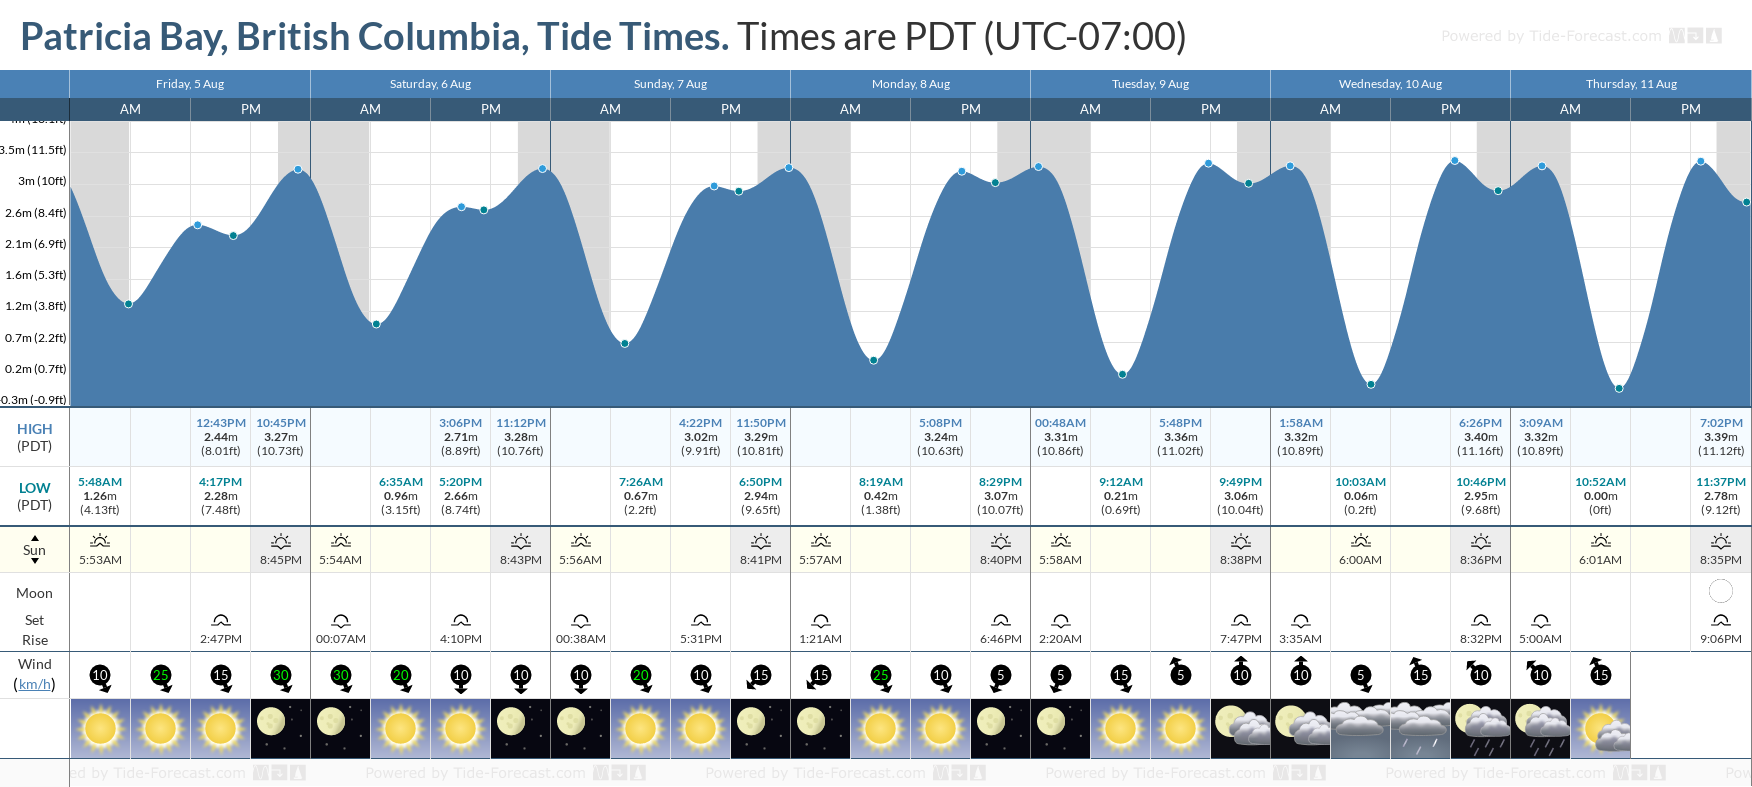 Patricia Bay, British Columbia Tide Chart including high and low tide tide times for the next 7 days